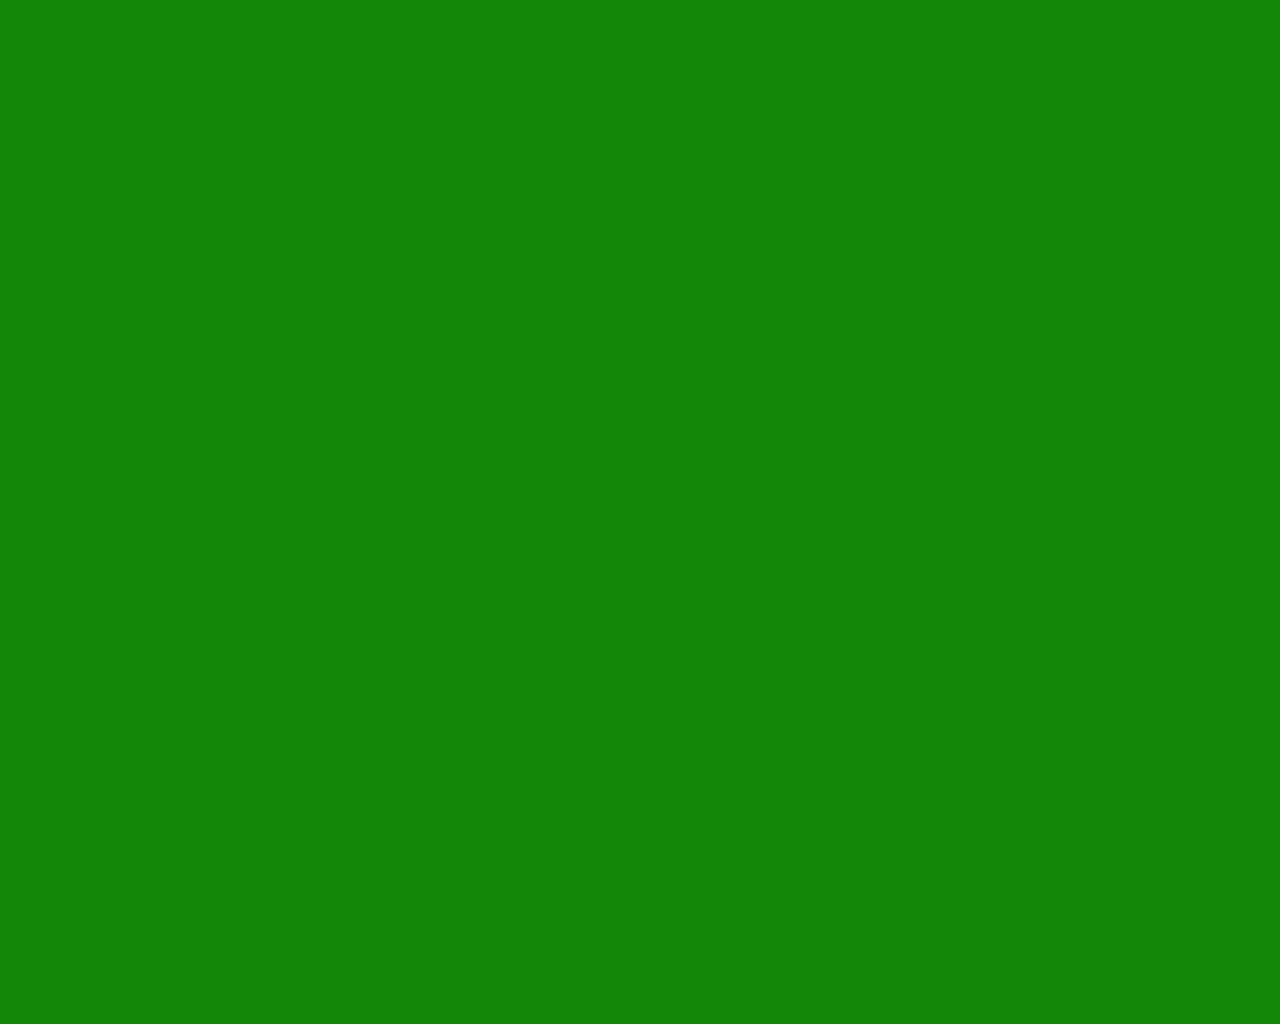 1280x1024 India Green Solid Color Background